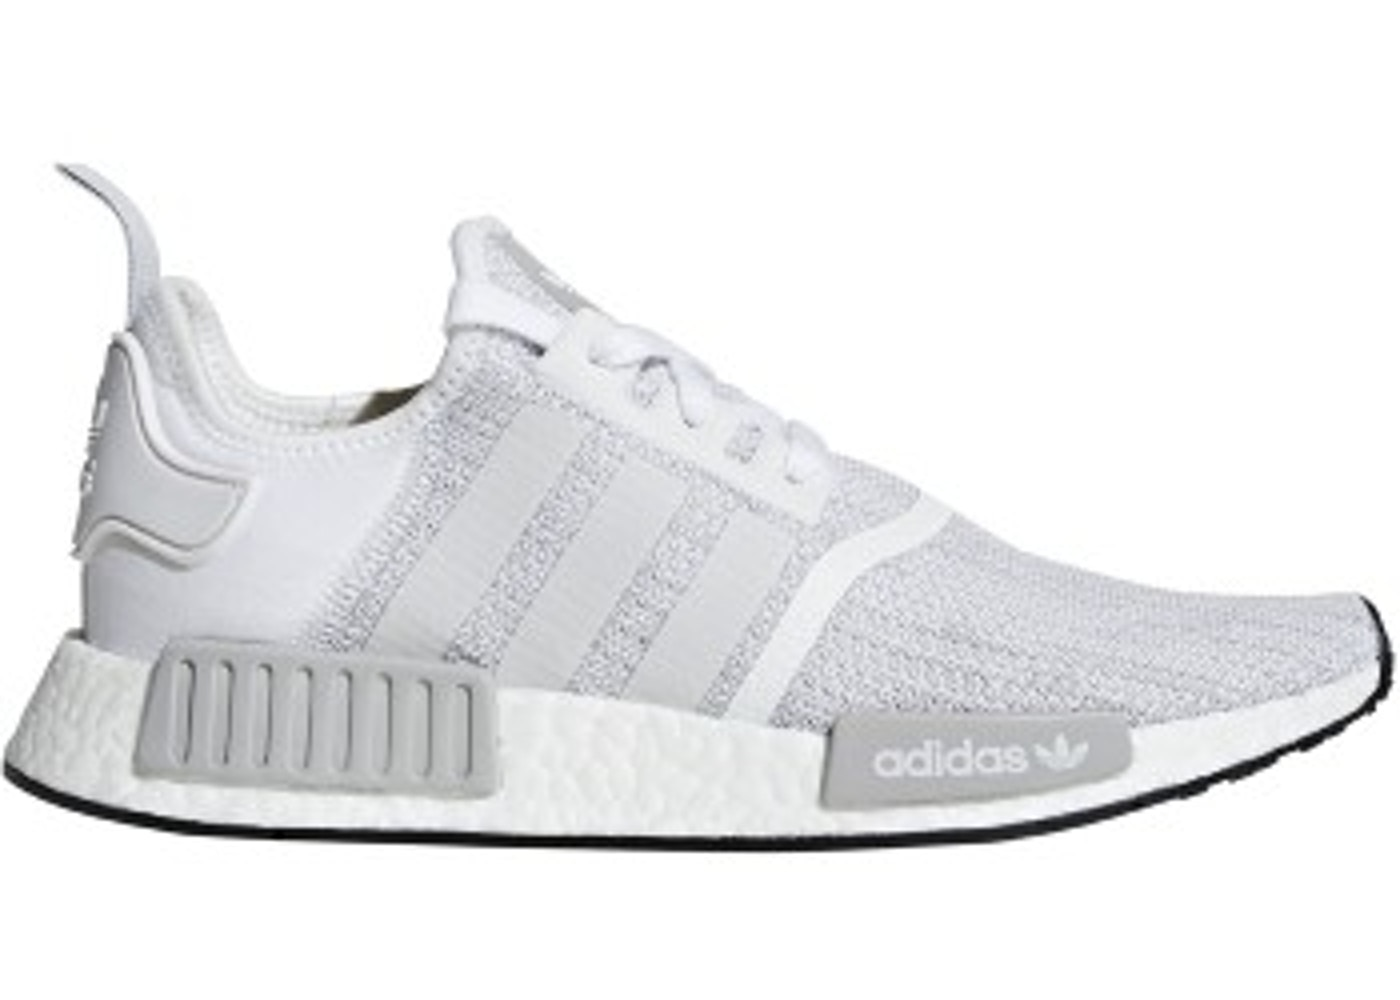 sports shoes 914da 0dda2 adidas NMD R1 Blizzard